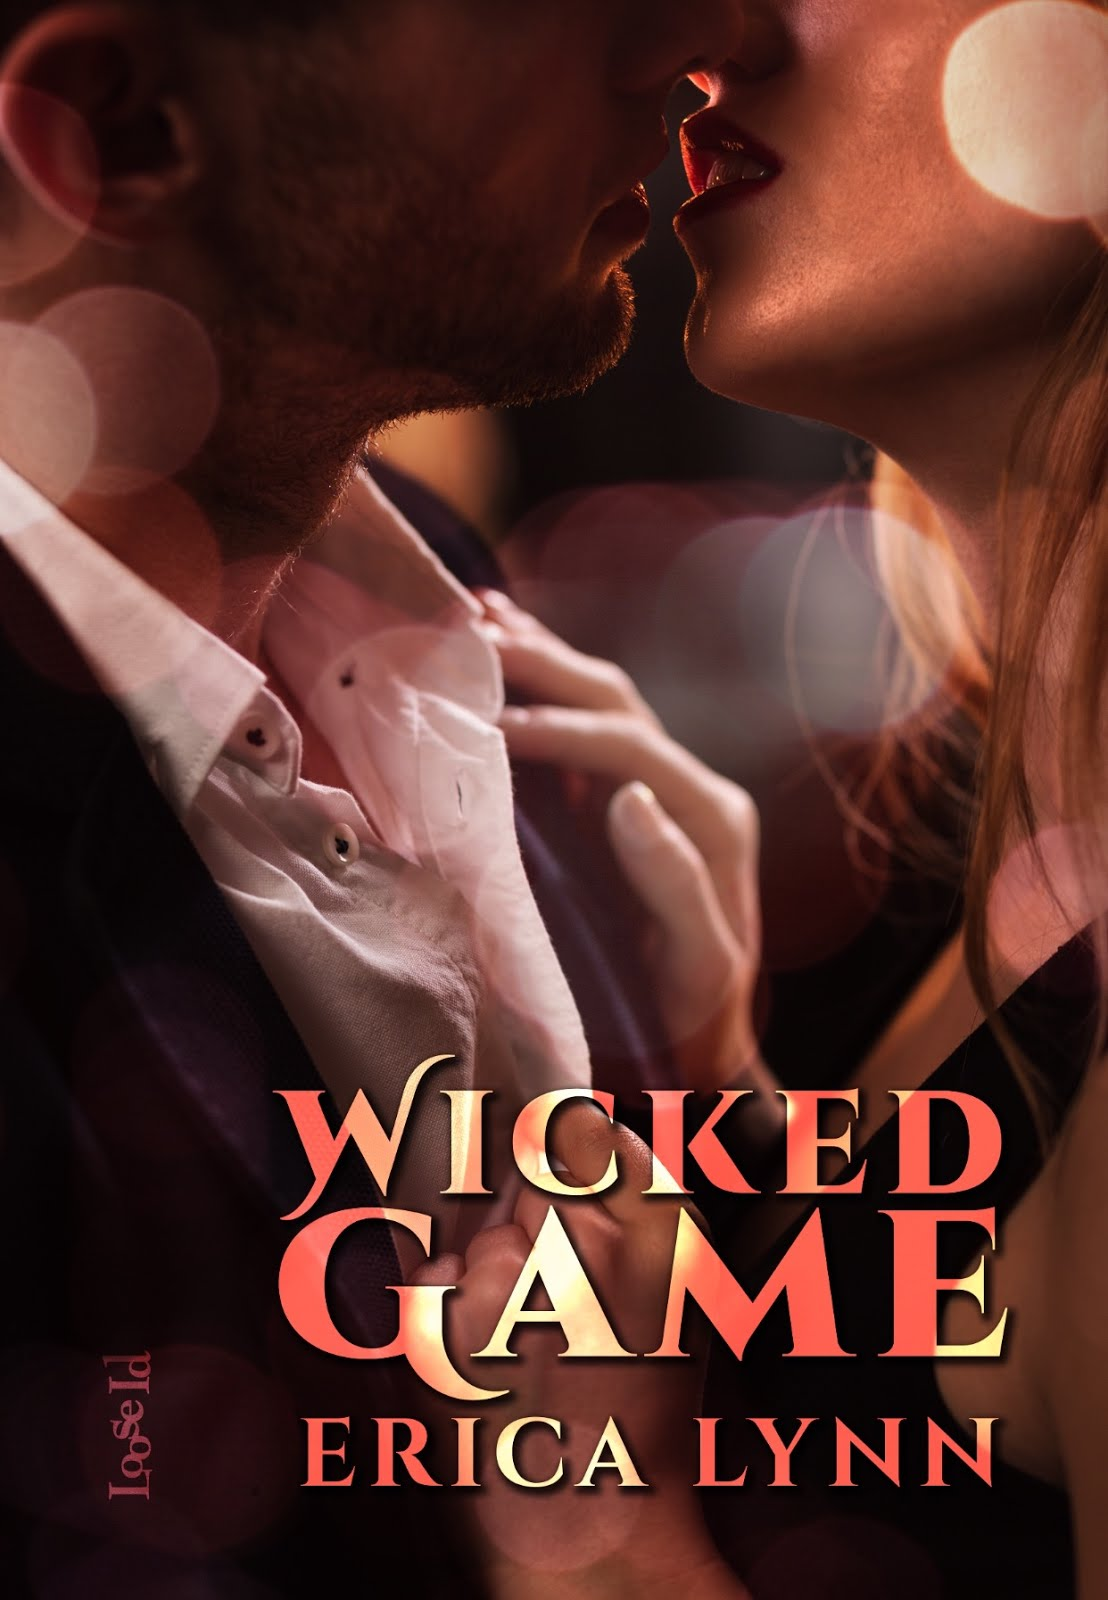 WICKED GAME BY ERICA LYNN